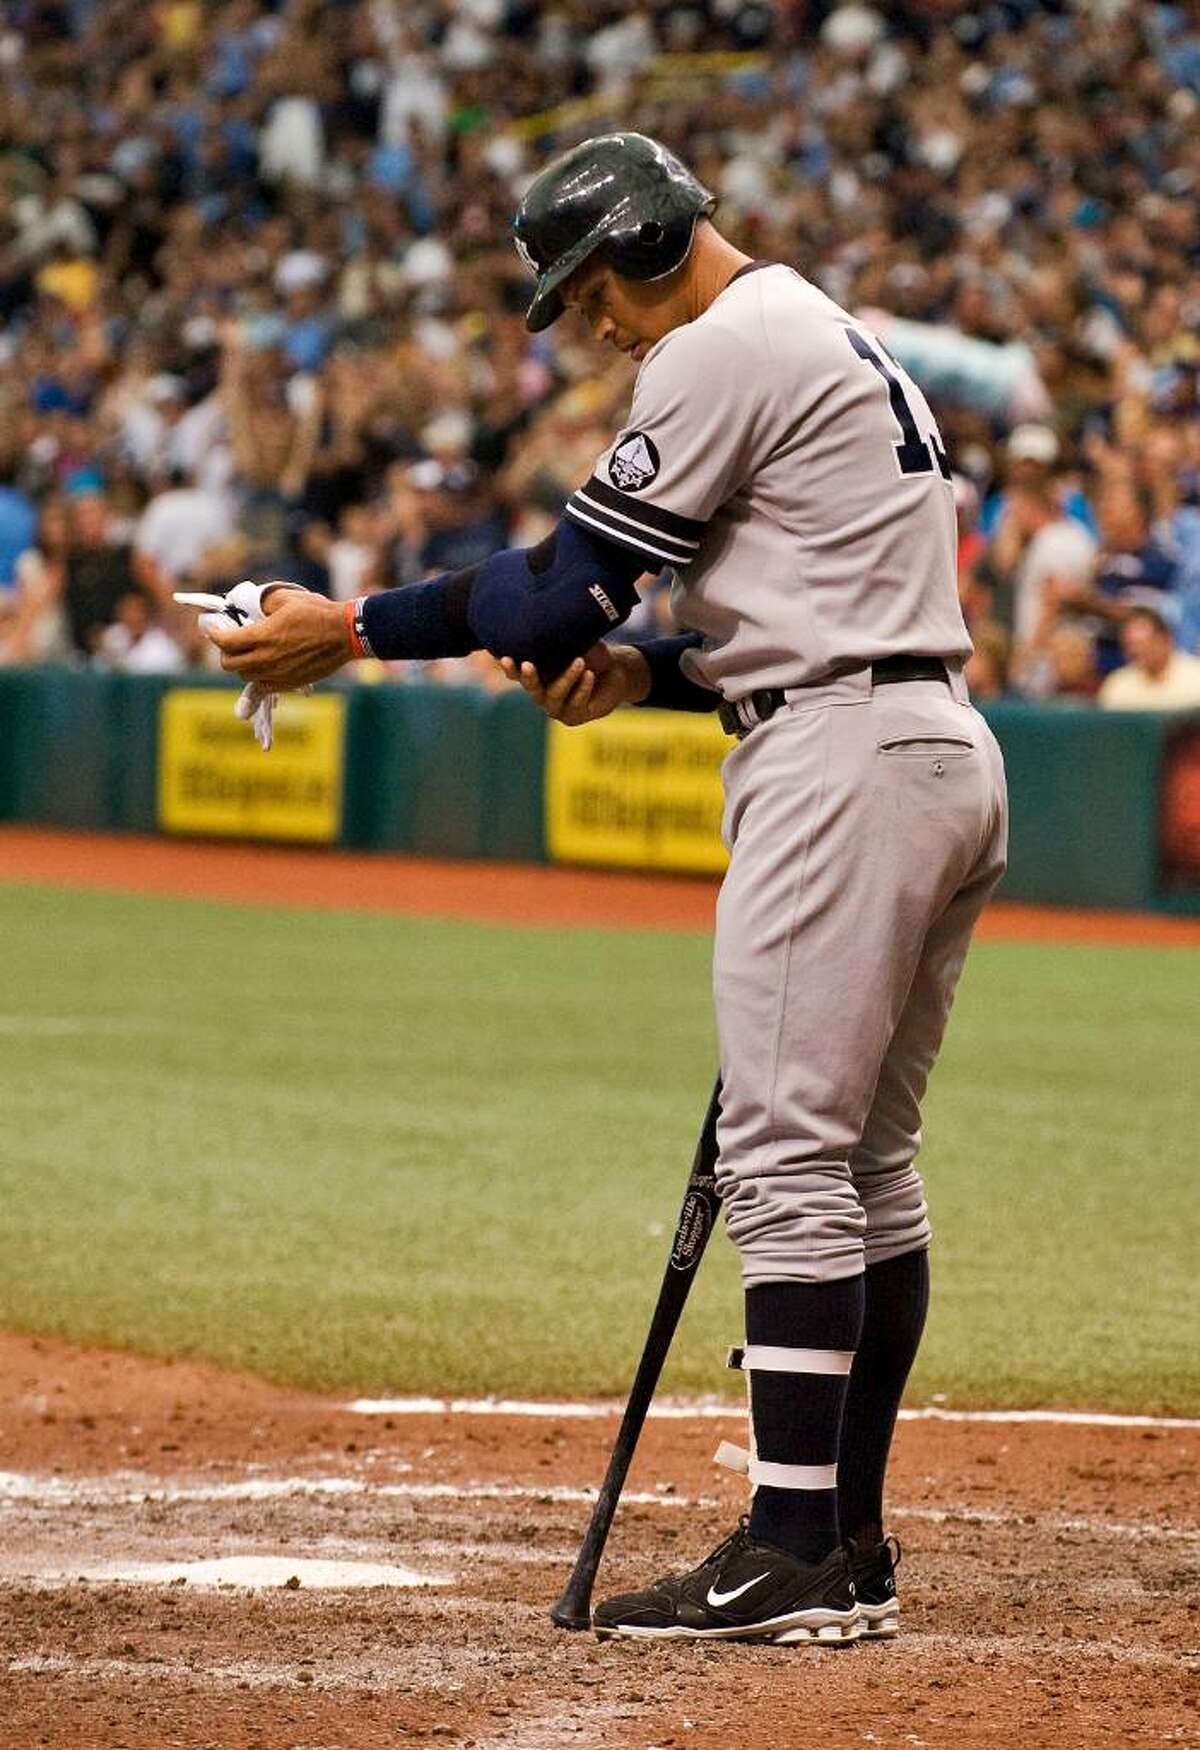 New York Yankees' Alex Rodriguez takes off his batting gear after striking out as a pinch hitter against Tampa Bay Rays pitcher James Shields to end the seventh inning of a baseball game Sunday, Aug. 1, 2010, in St. Petersburg, Fla. The Rays defeated the Yankees 3-0. (AP Photo/Steve Nesius)